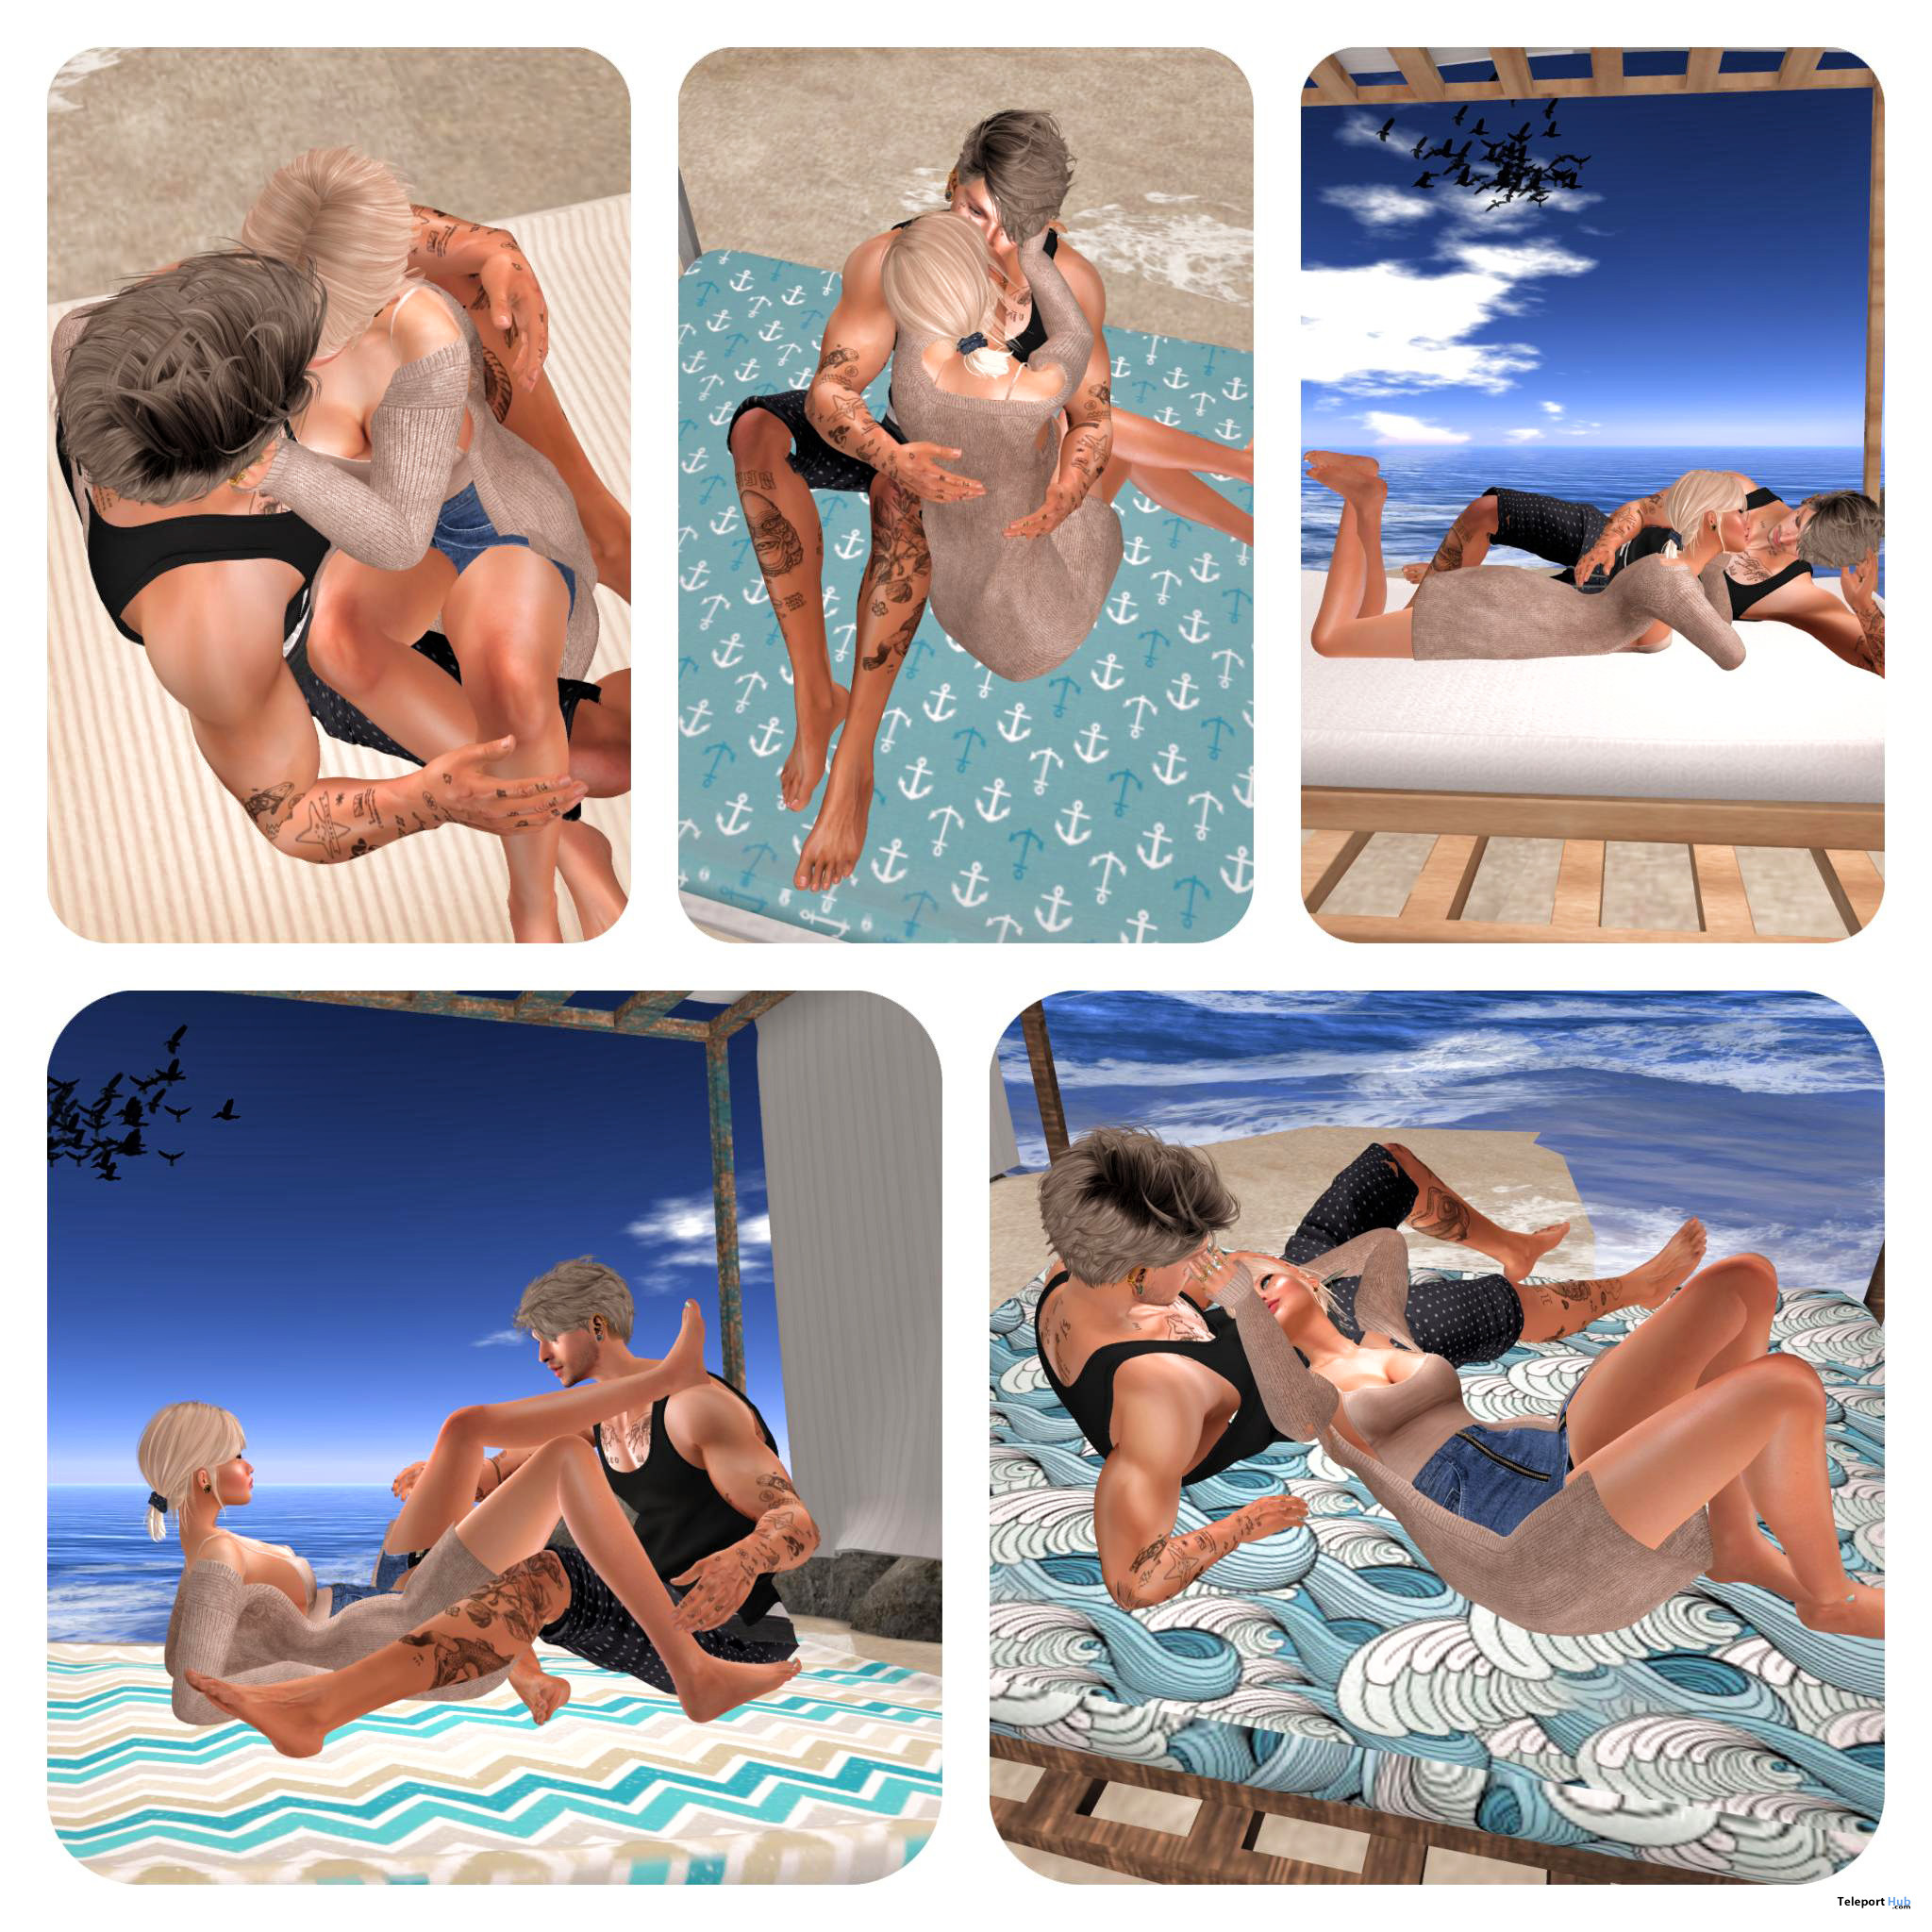 New Release: Canopy Beach Lounger PG & Adult by [satus Inc] - Teleport Hub - teleporthub.com